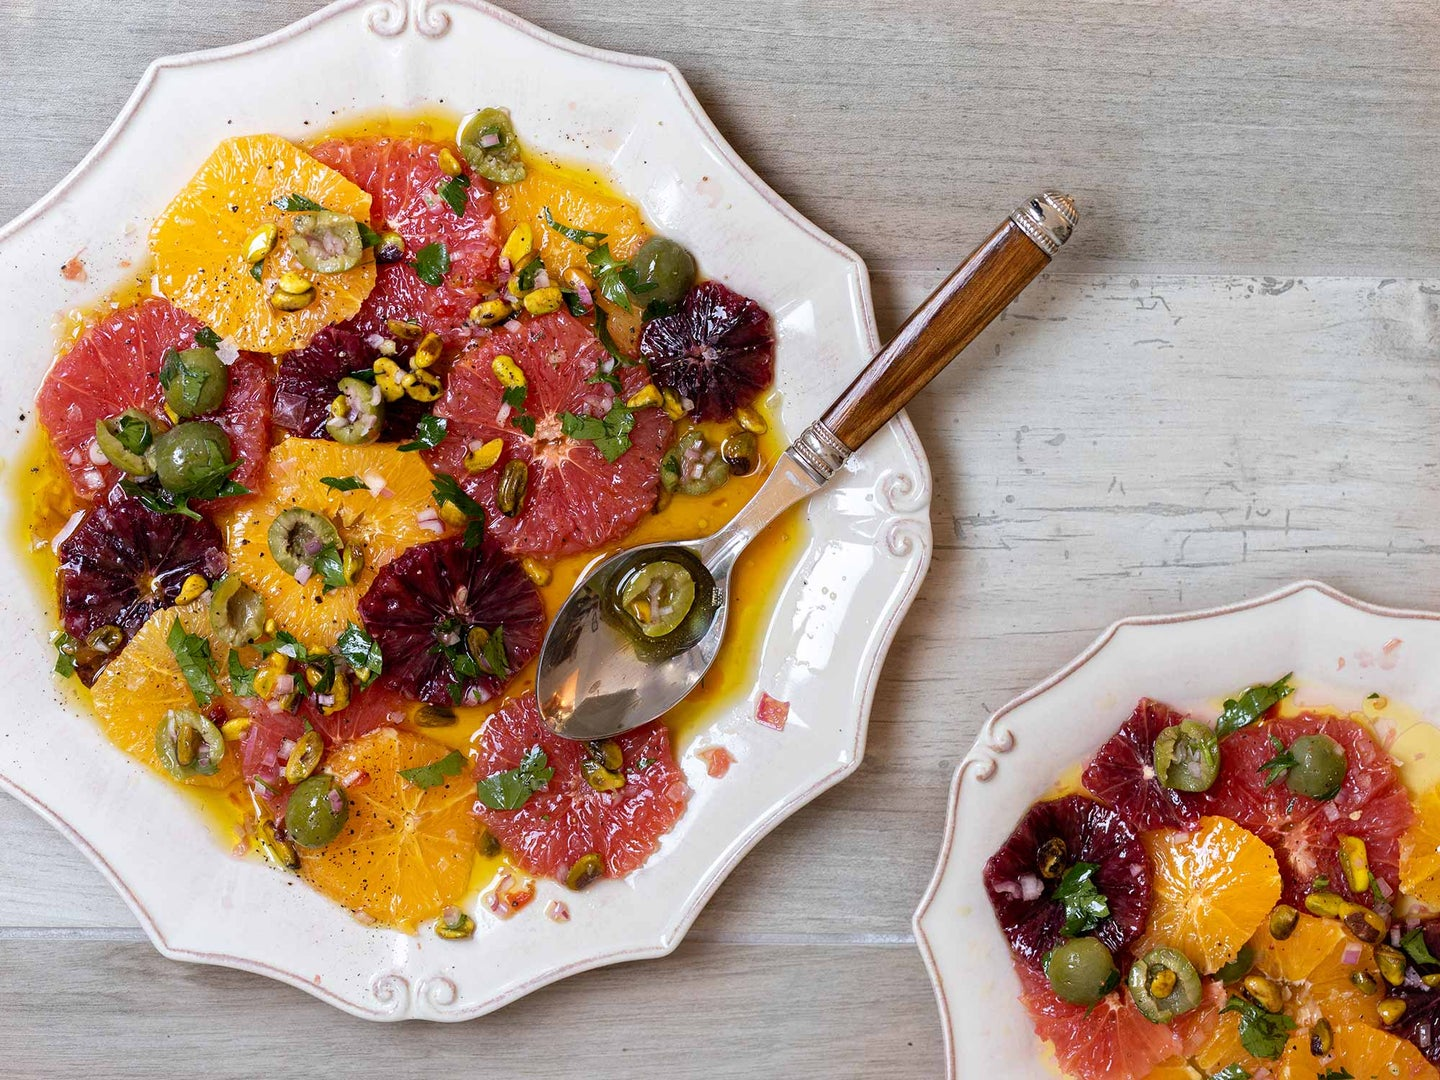 Winter citrus salad with olive oil, and briny Castelvetrano olives